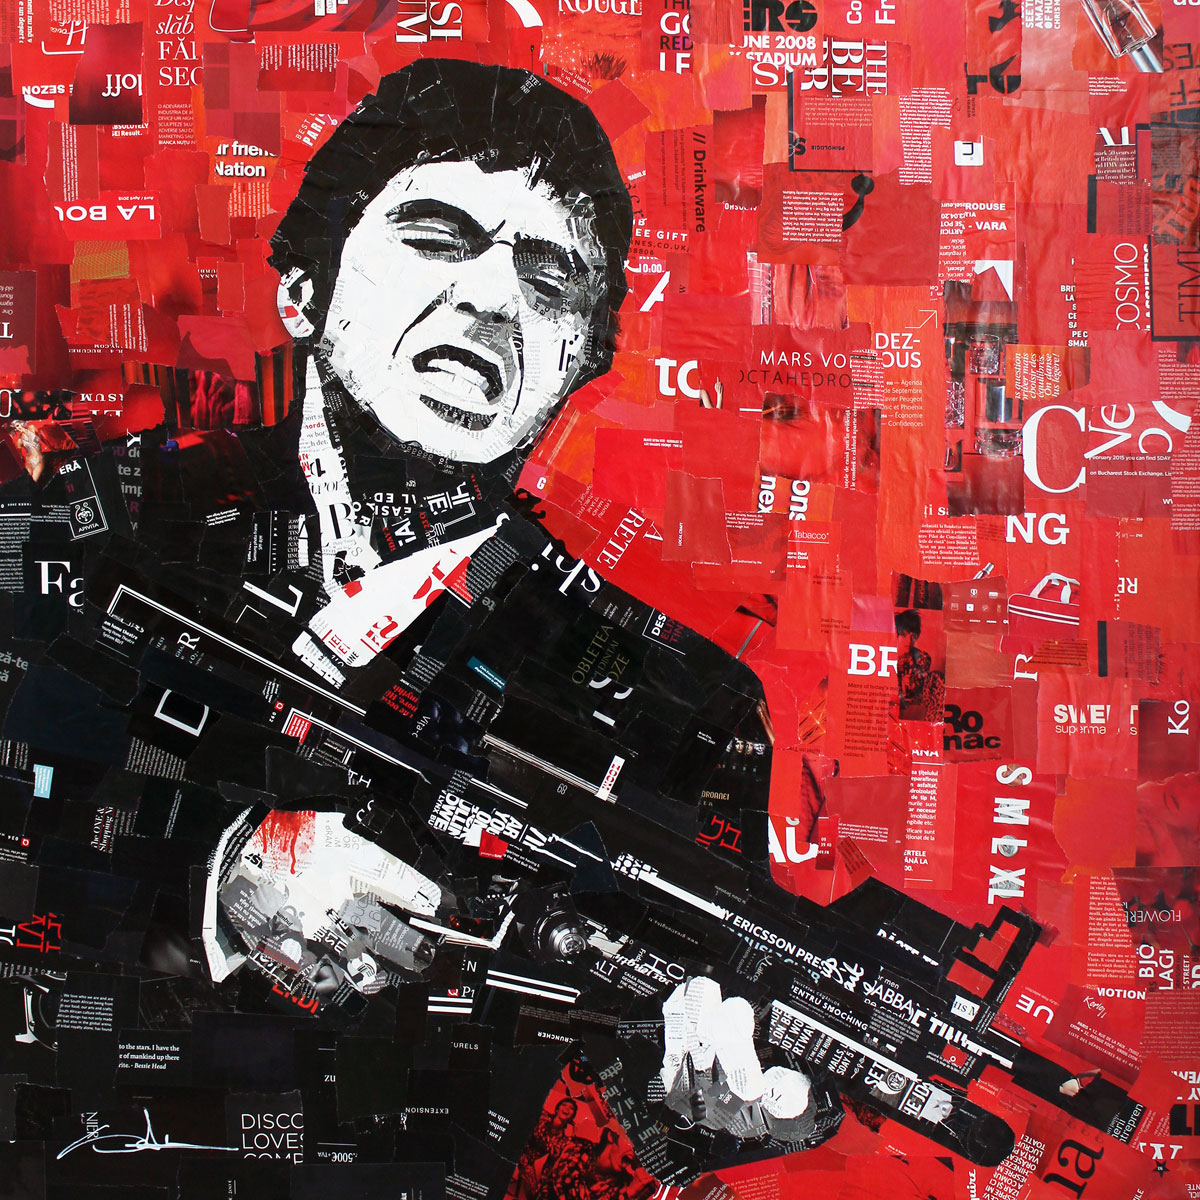 Al Pacino - say hello to my little friend 100x100cm